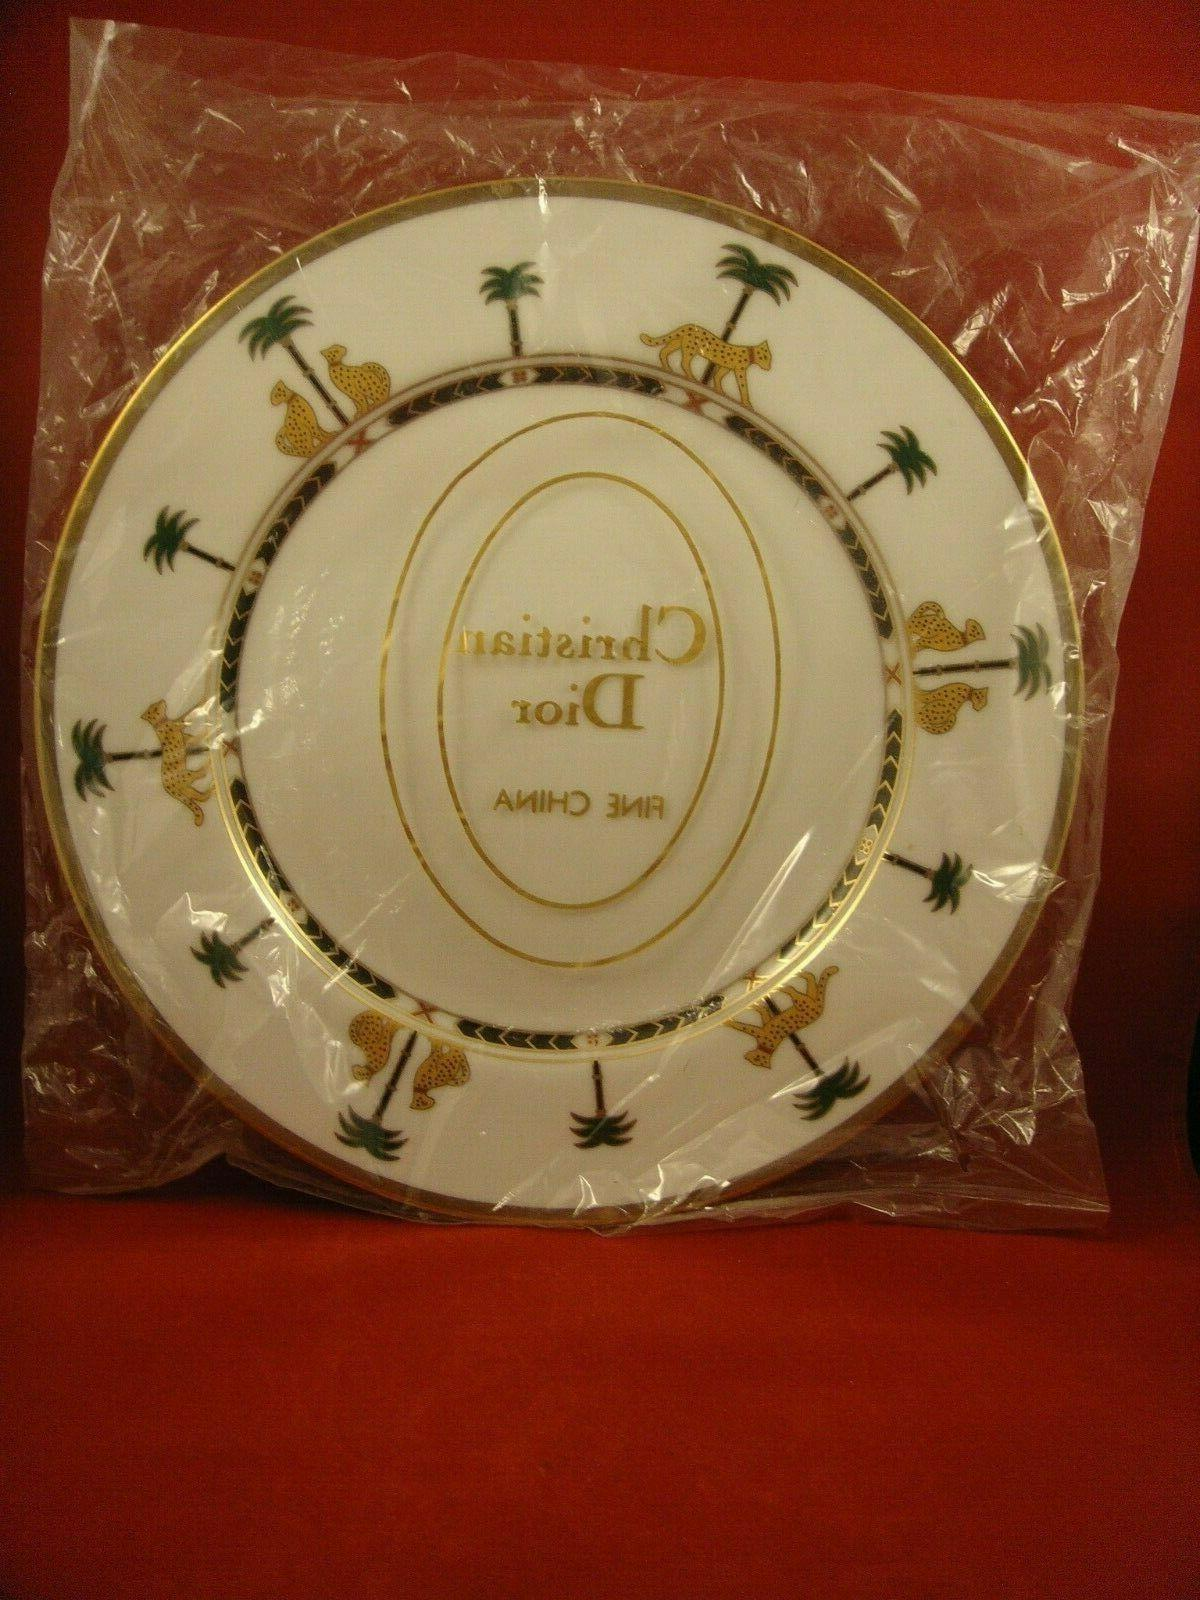 casablanca dinner plates new in plastic wrappers